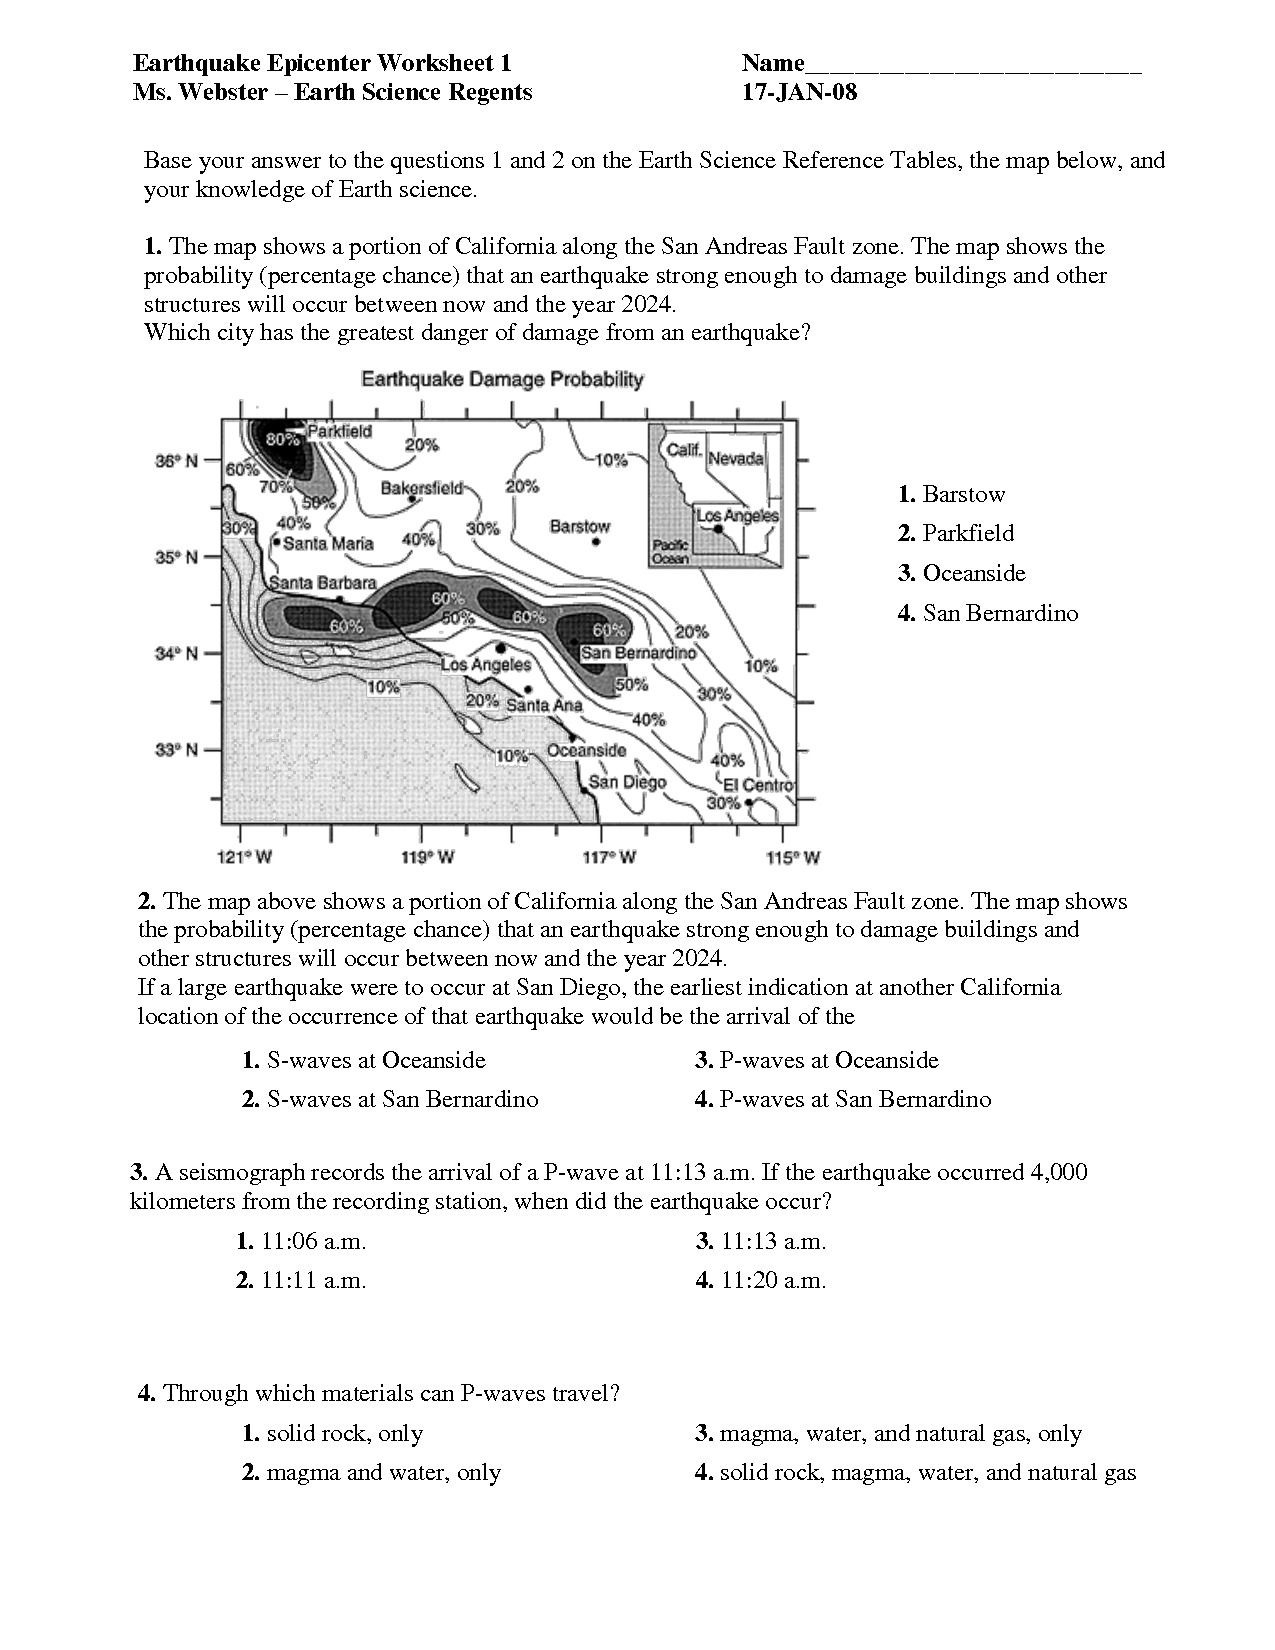 Cryptic Quiz Worksheet Answers